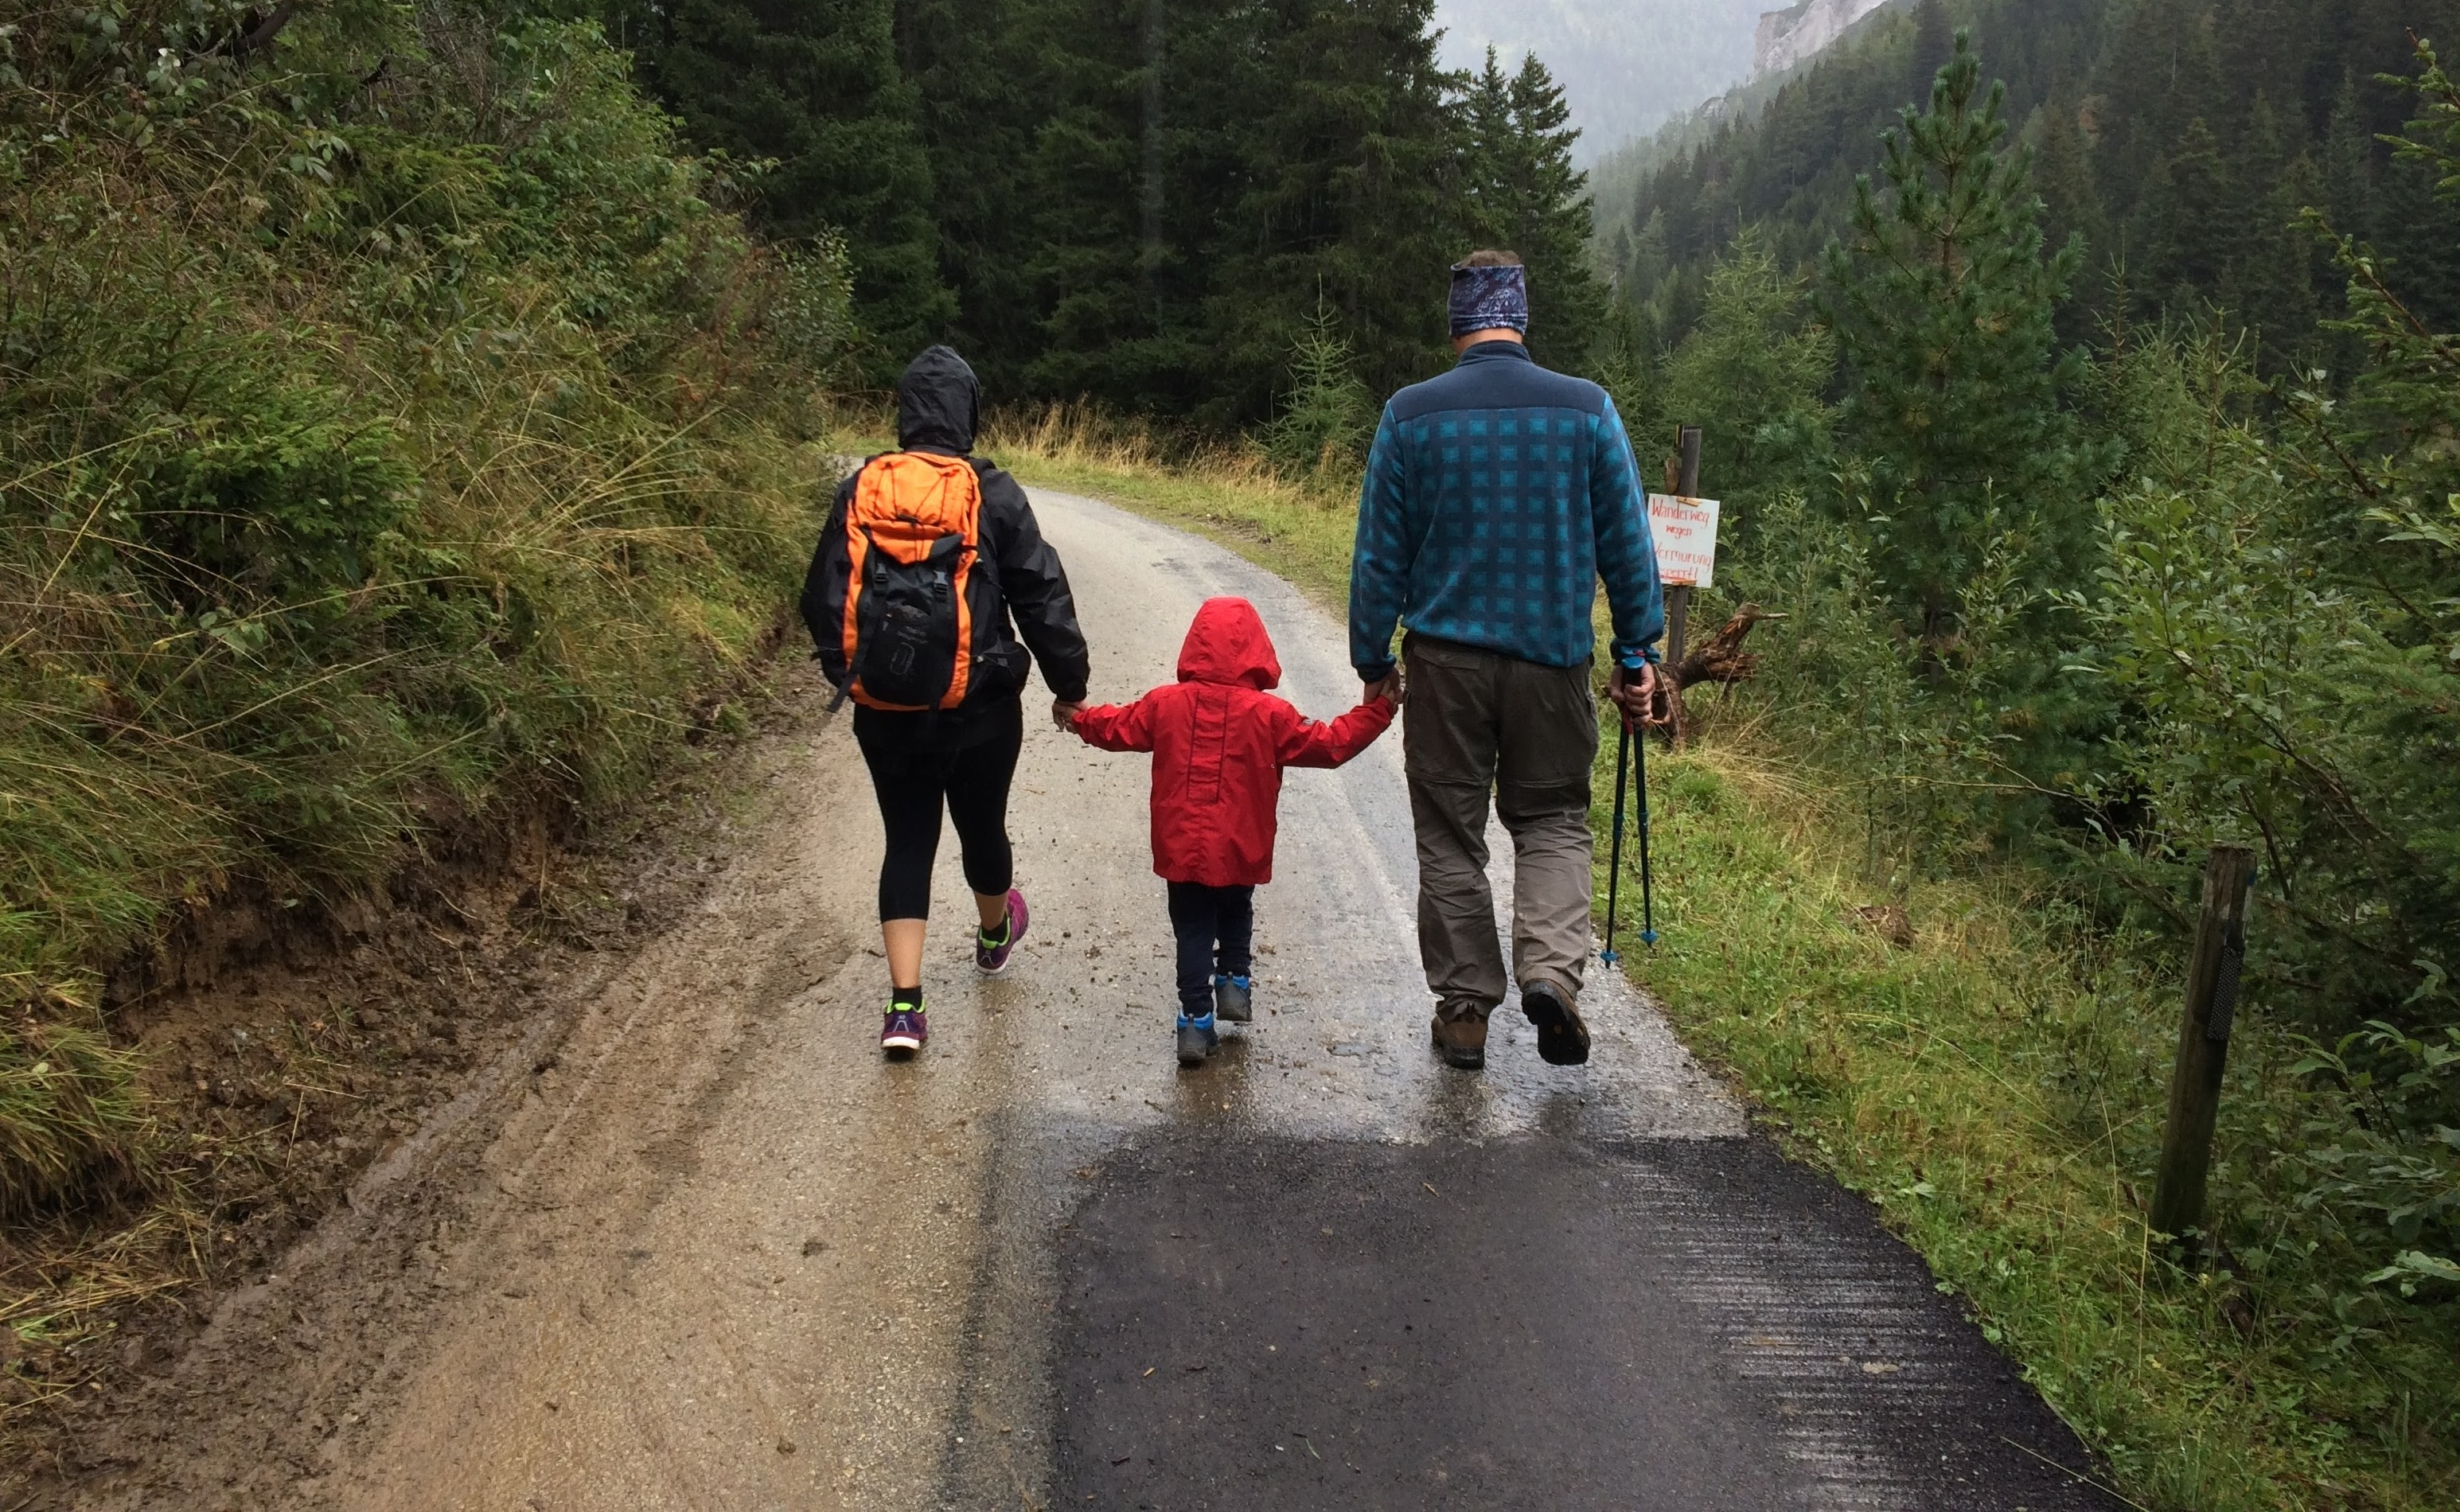 A mother and father walking down a trail outside with their child